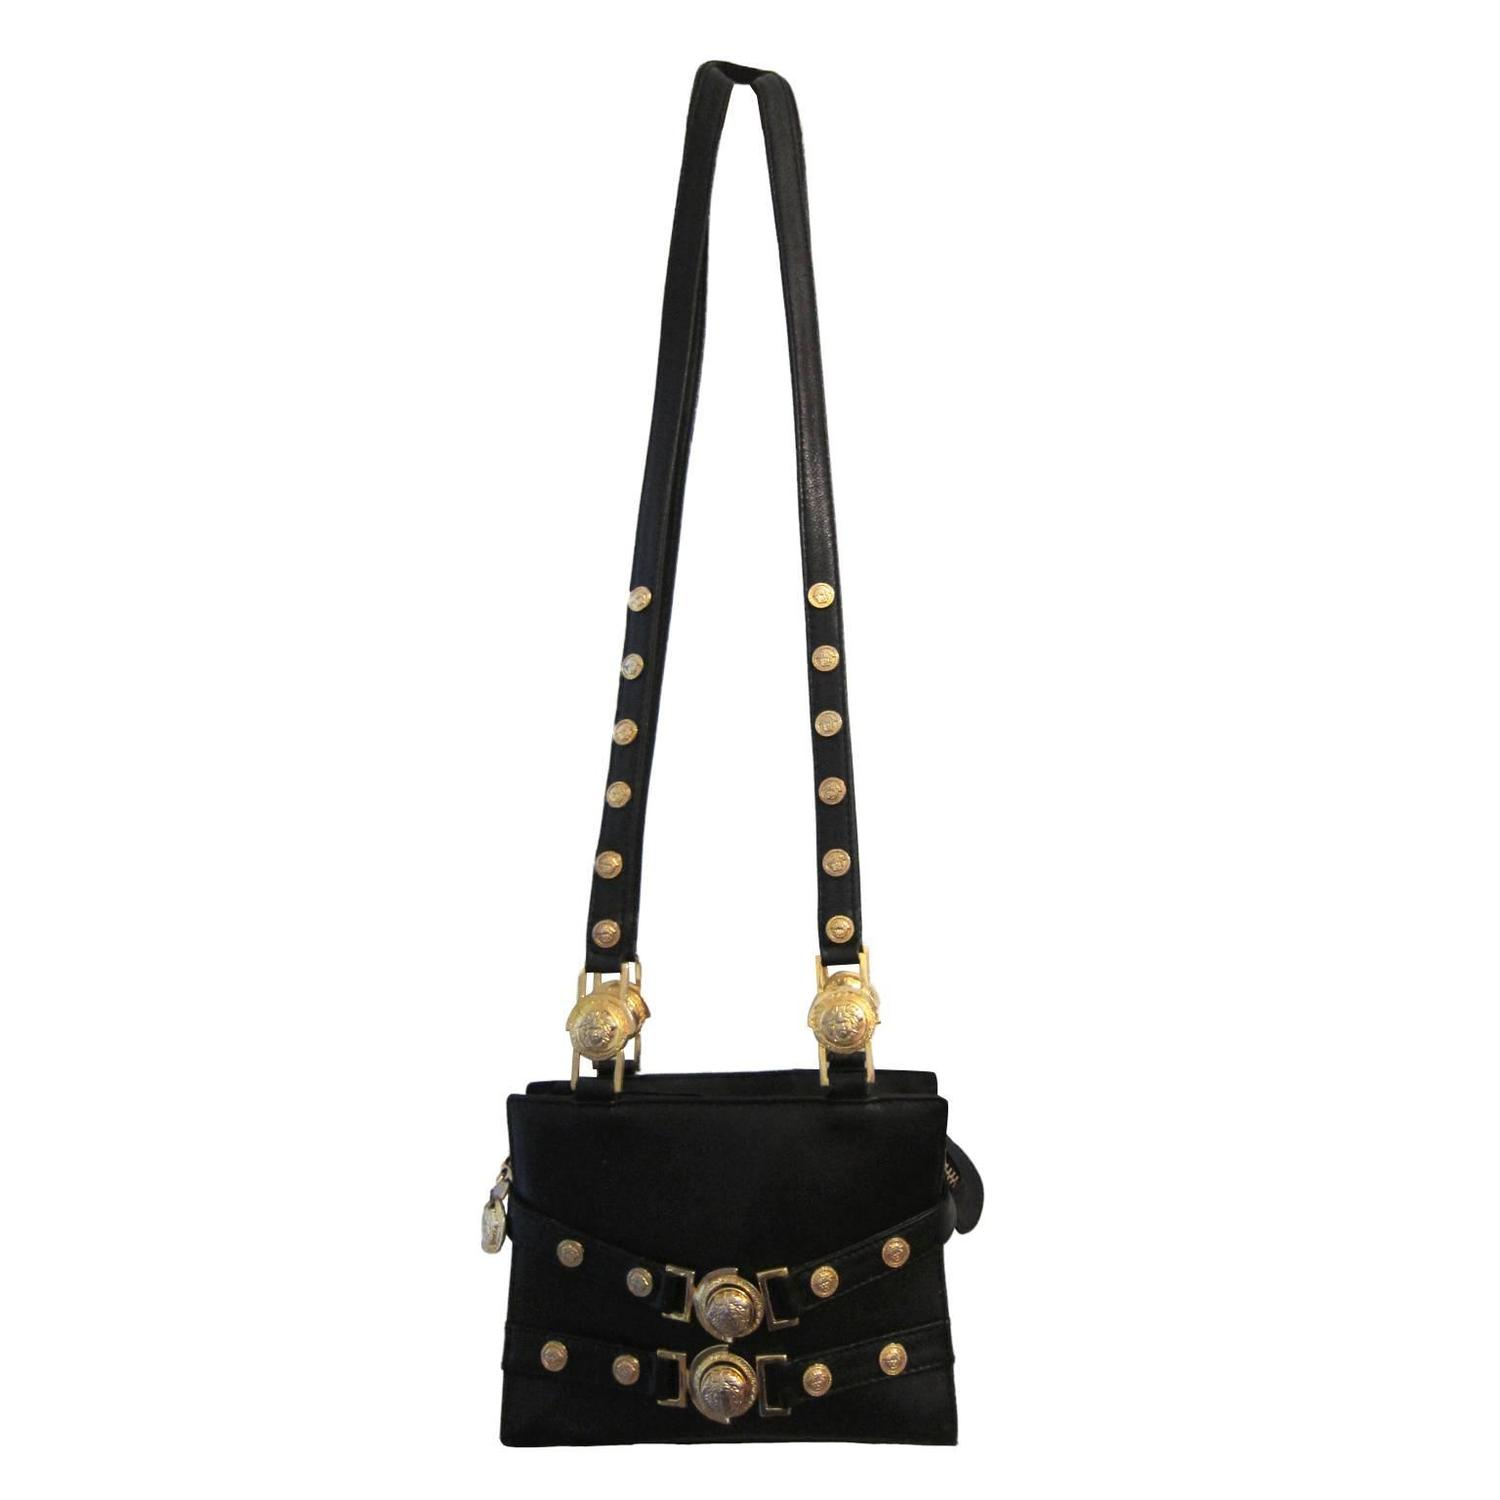 Gianni Versace Couture Black Gold Medusa Chain Mini Bag For At 1stdibs